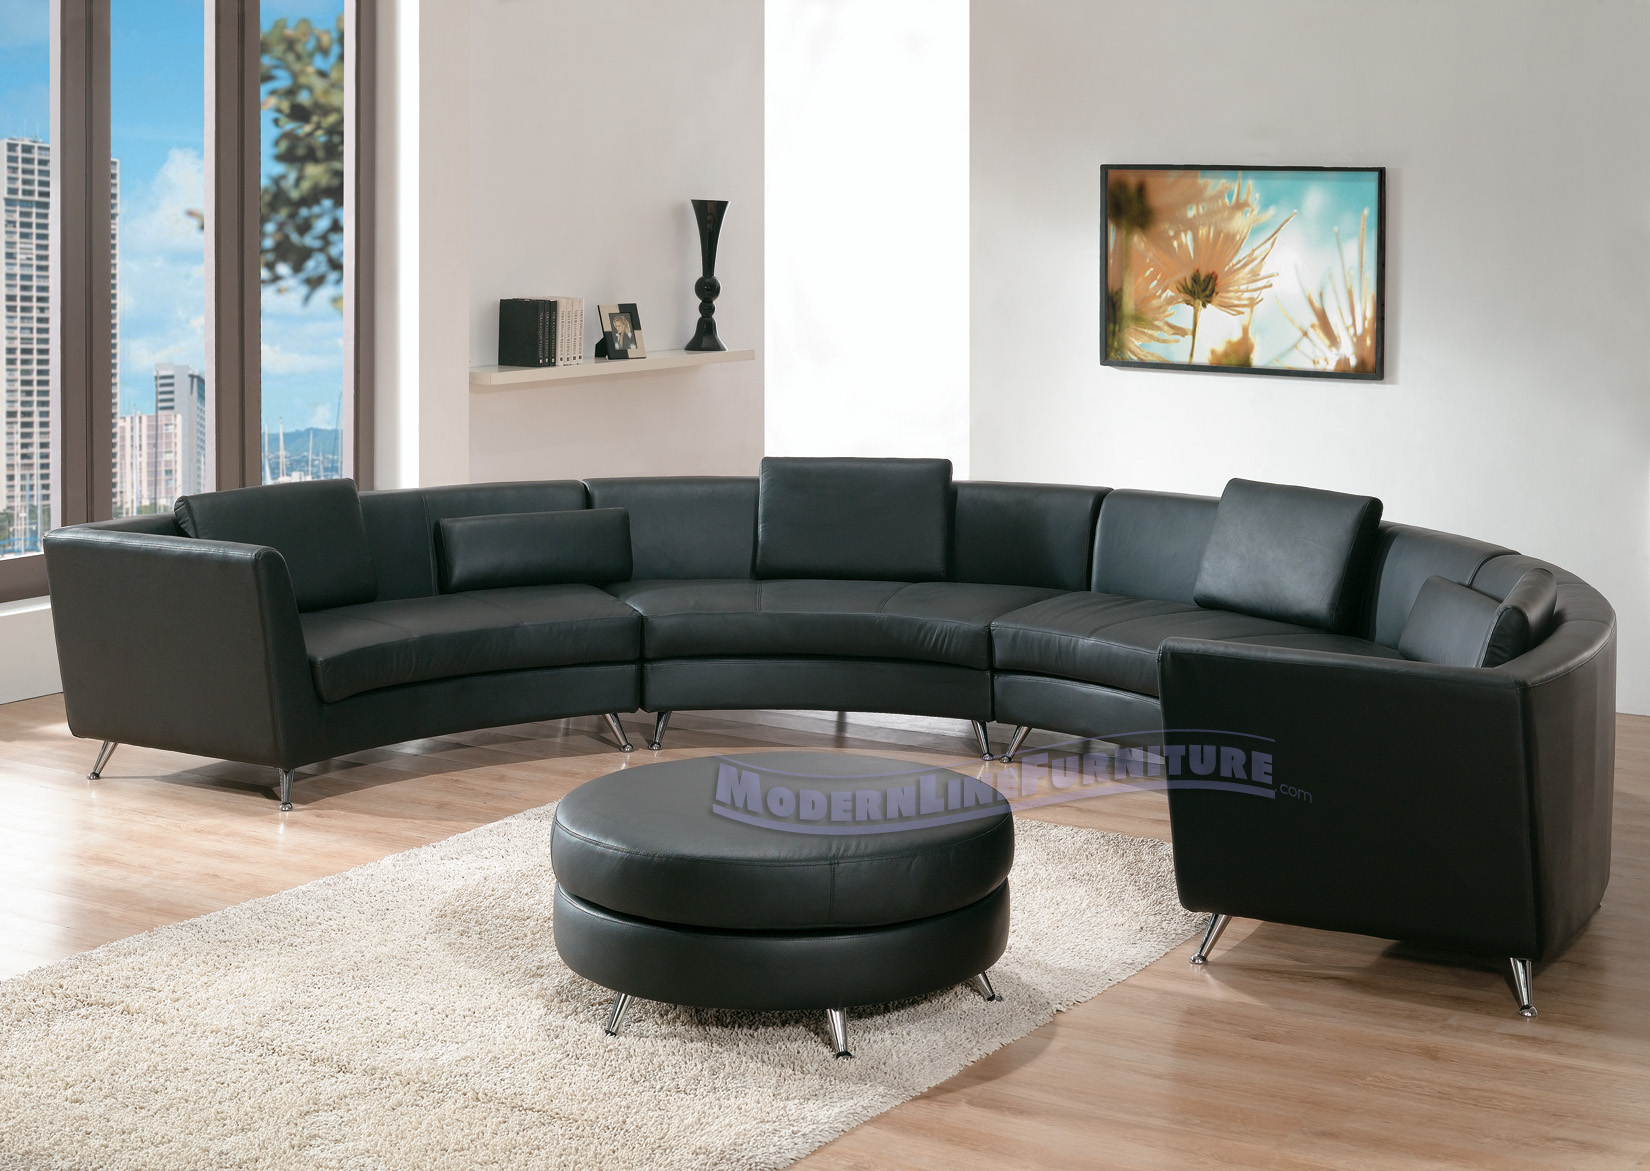 tufted colored ottoman not toronto wonderful pieces leather black sofas elegant sectional sofa three comfrotable corner included coaster sof randi design